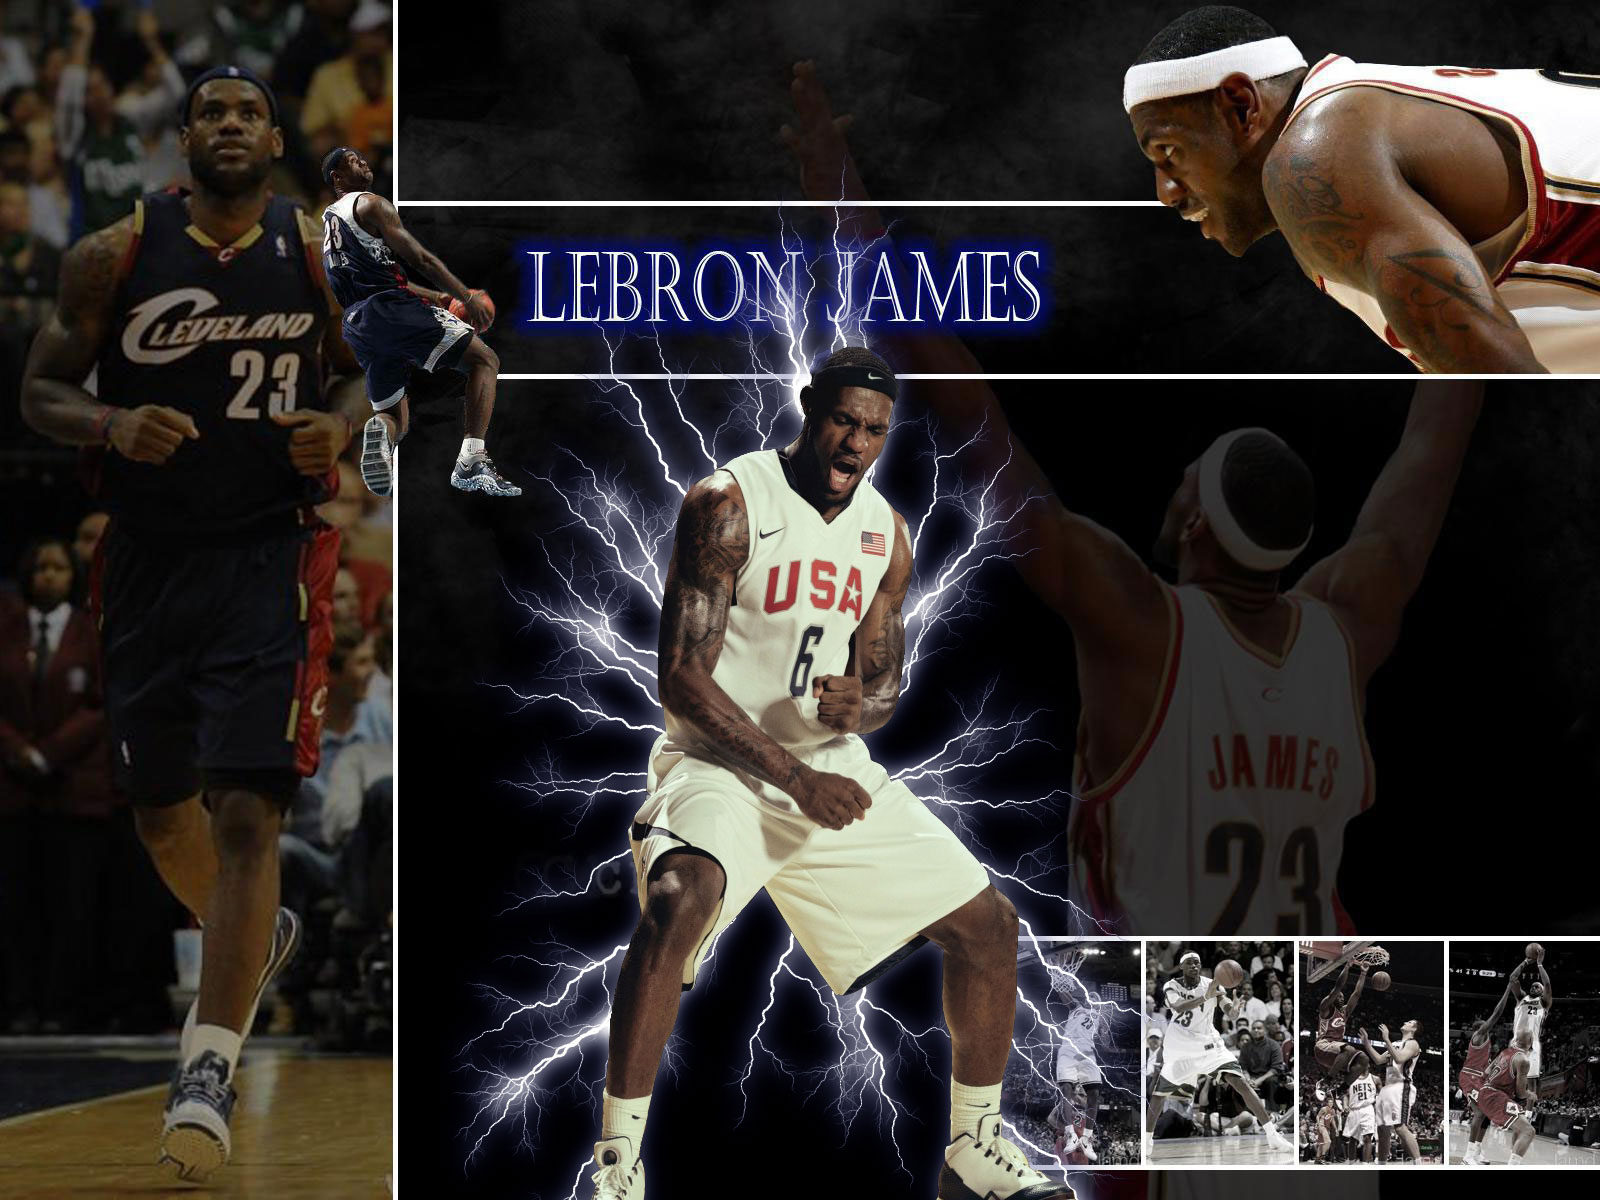 LeBron James Wallpaper 7